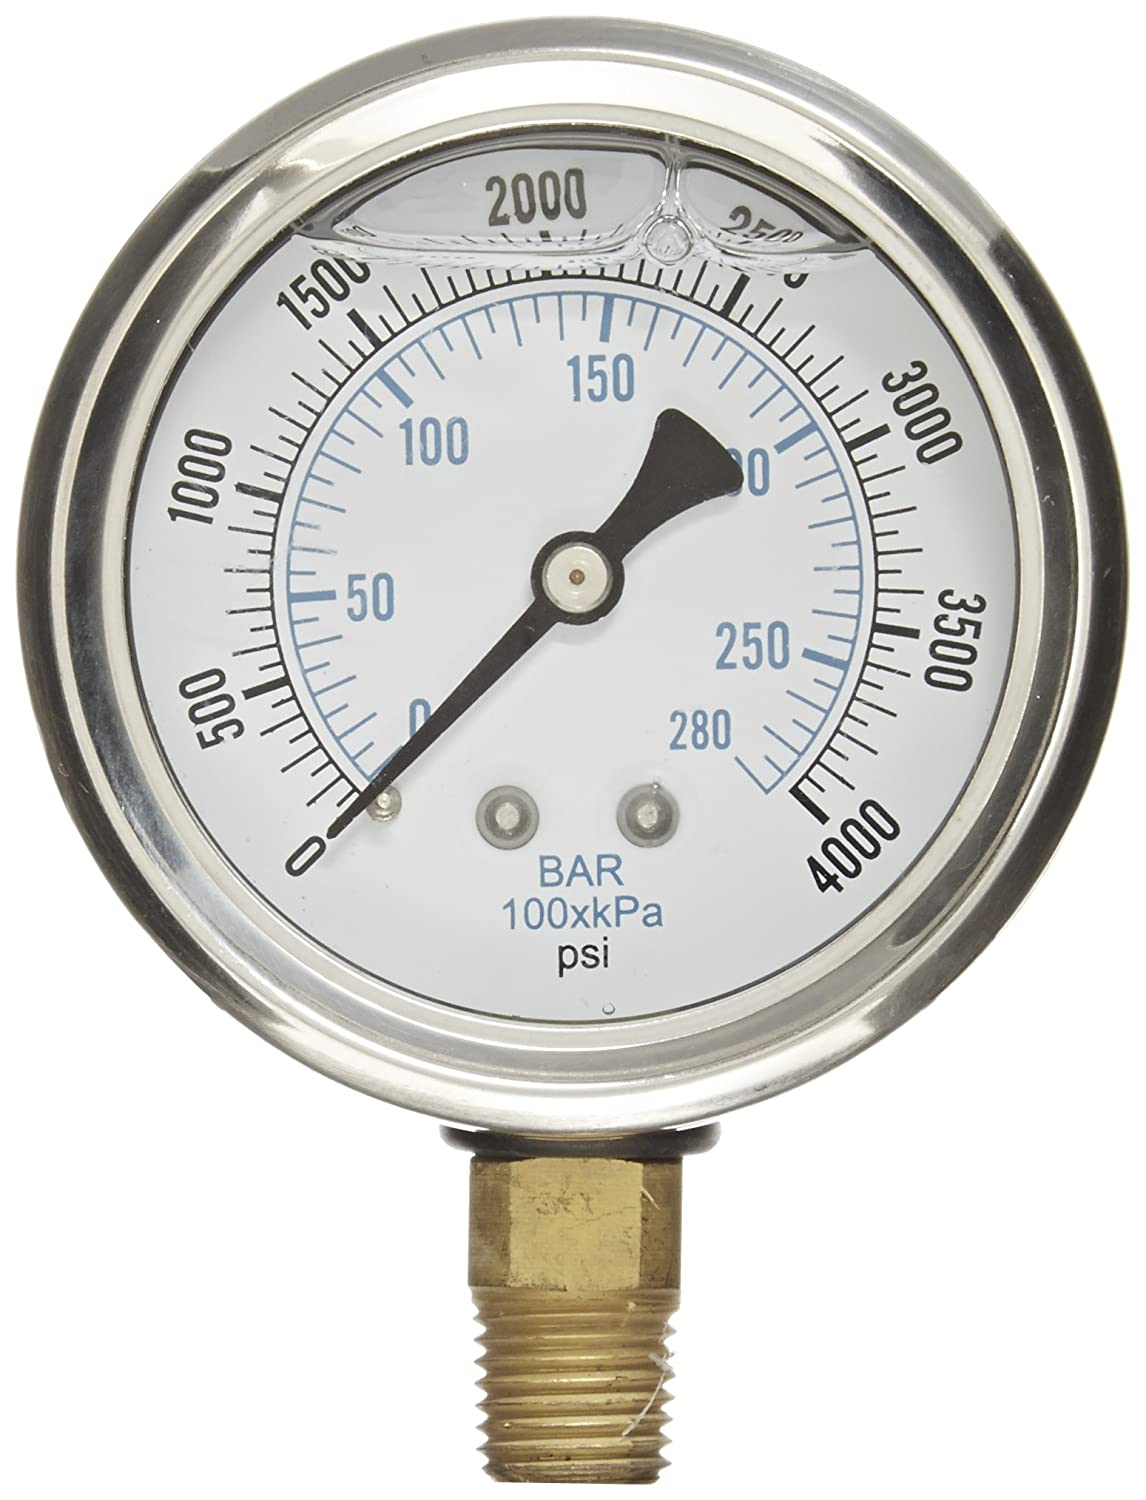 PIC Gauge PRO 201L 254Q Glycerin Filled Industrial Bottom Mount Pressure Gauge with Stainless Steel Case Brass Internals Plastic Lens 2 1 2 Dial Size 1 4 Male NPT 0 4000 psi